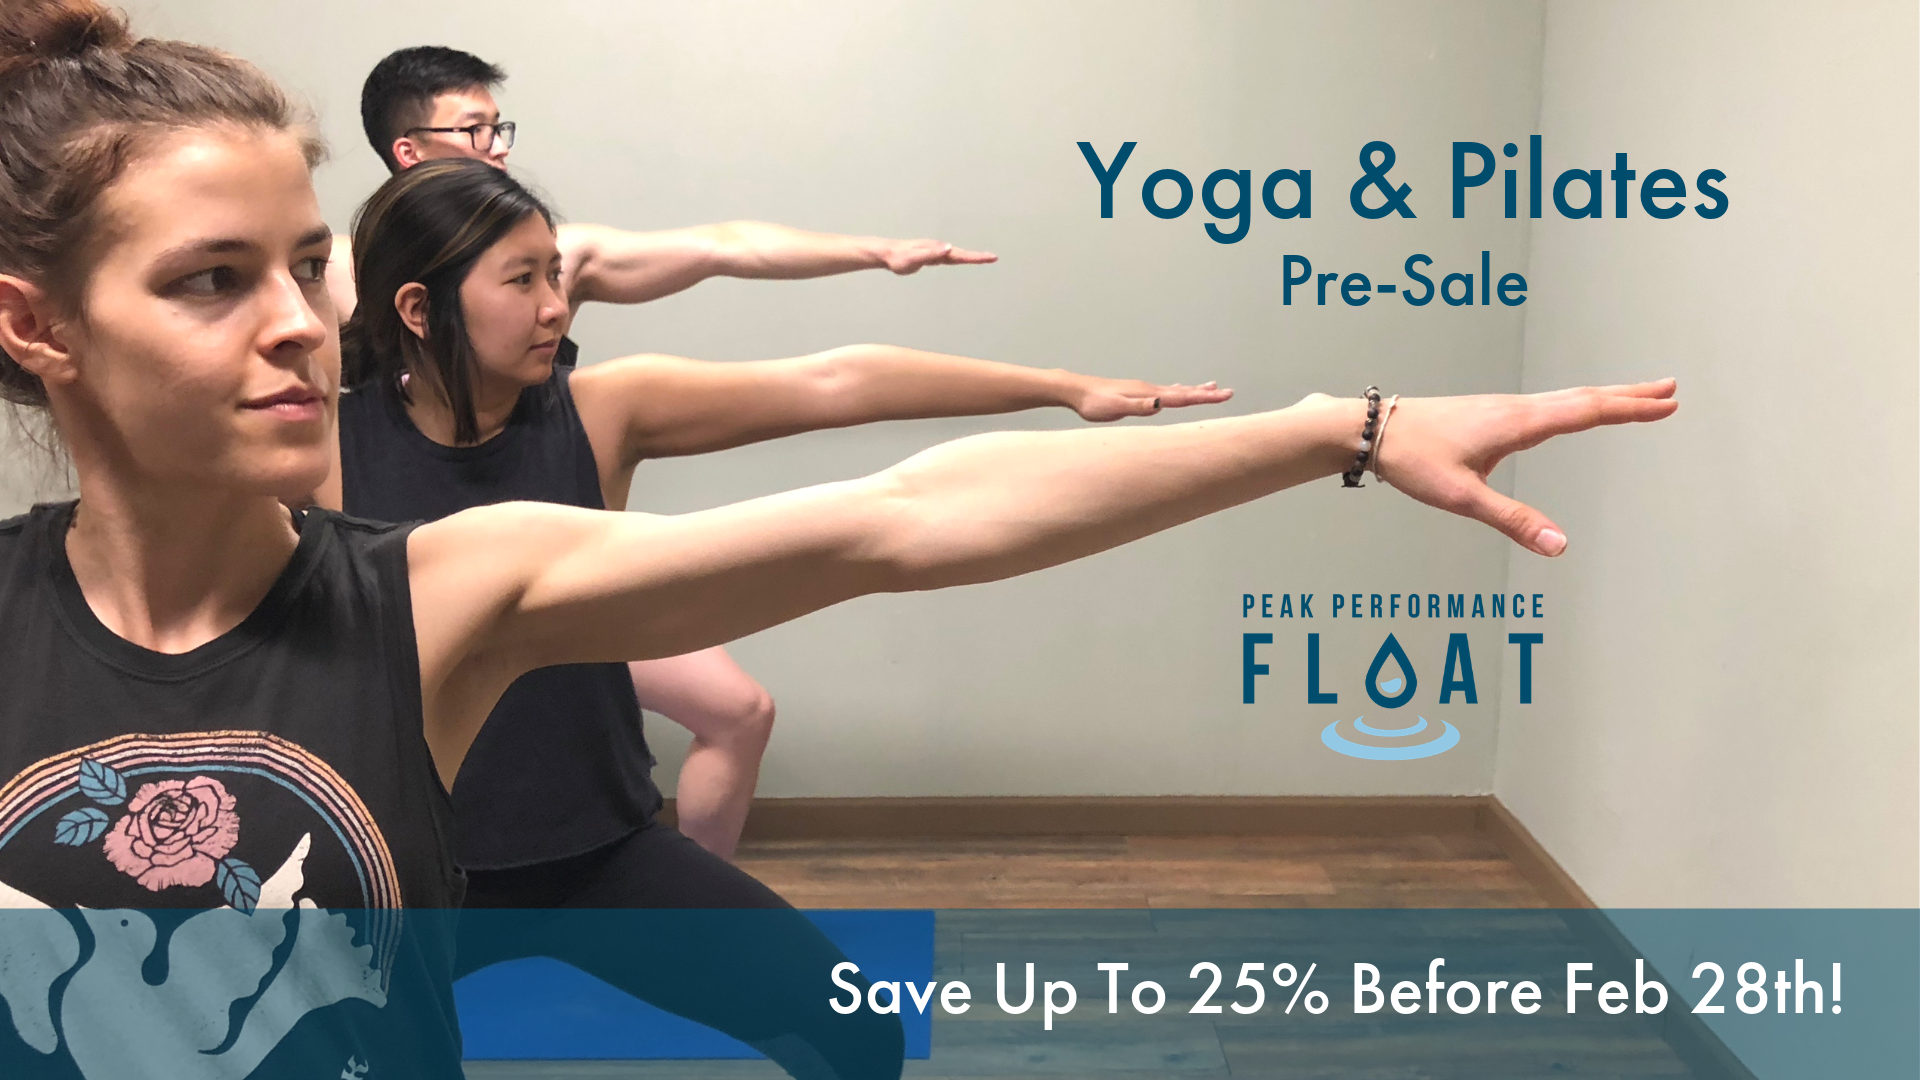 Yoga Deals in Walnut Creek, ca